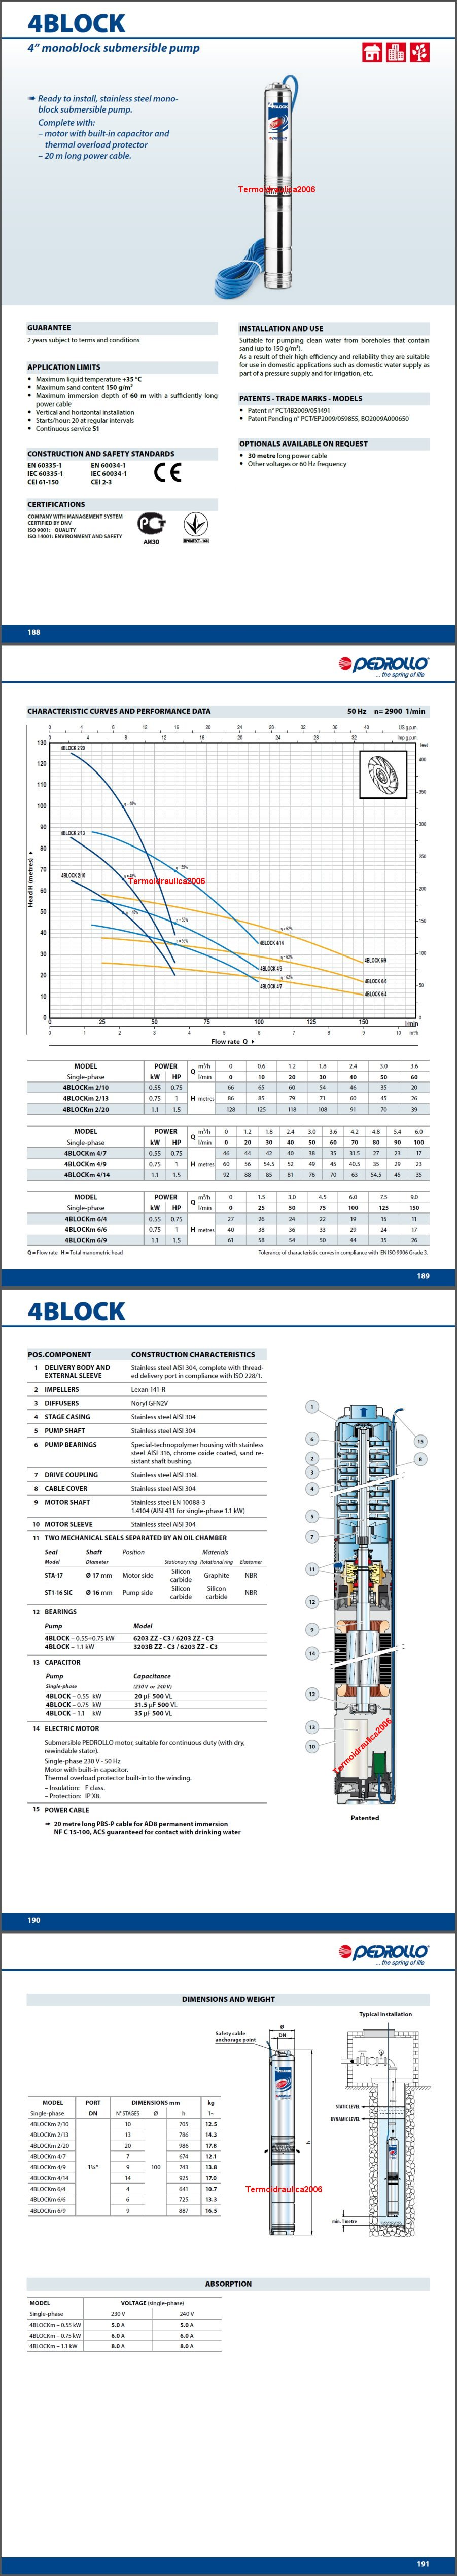 Data Sheet Pedrollo 4BLOCK